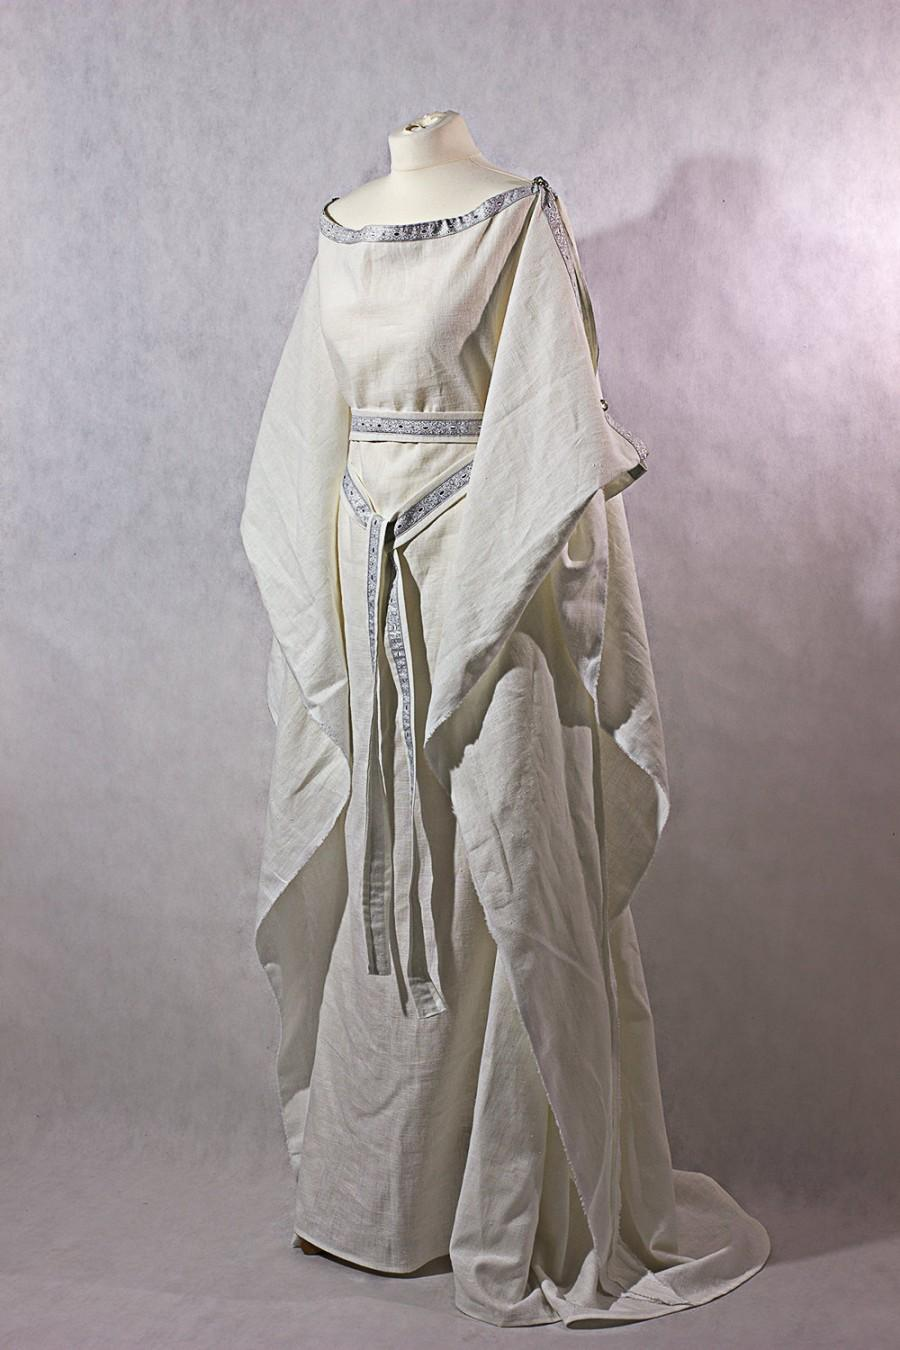 Meval Wedding Dress Ceres In Roman Style For Or Handfasting Of Thrones Inspired Daenerys Bridemaid Dresses